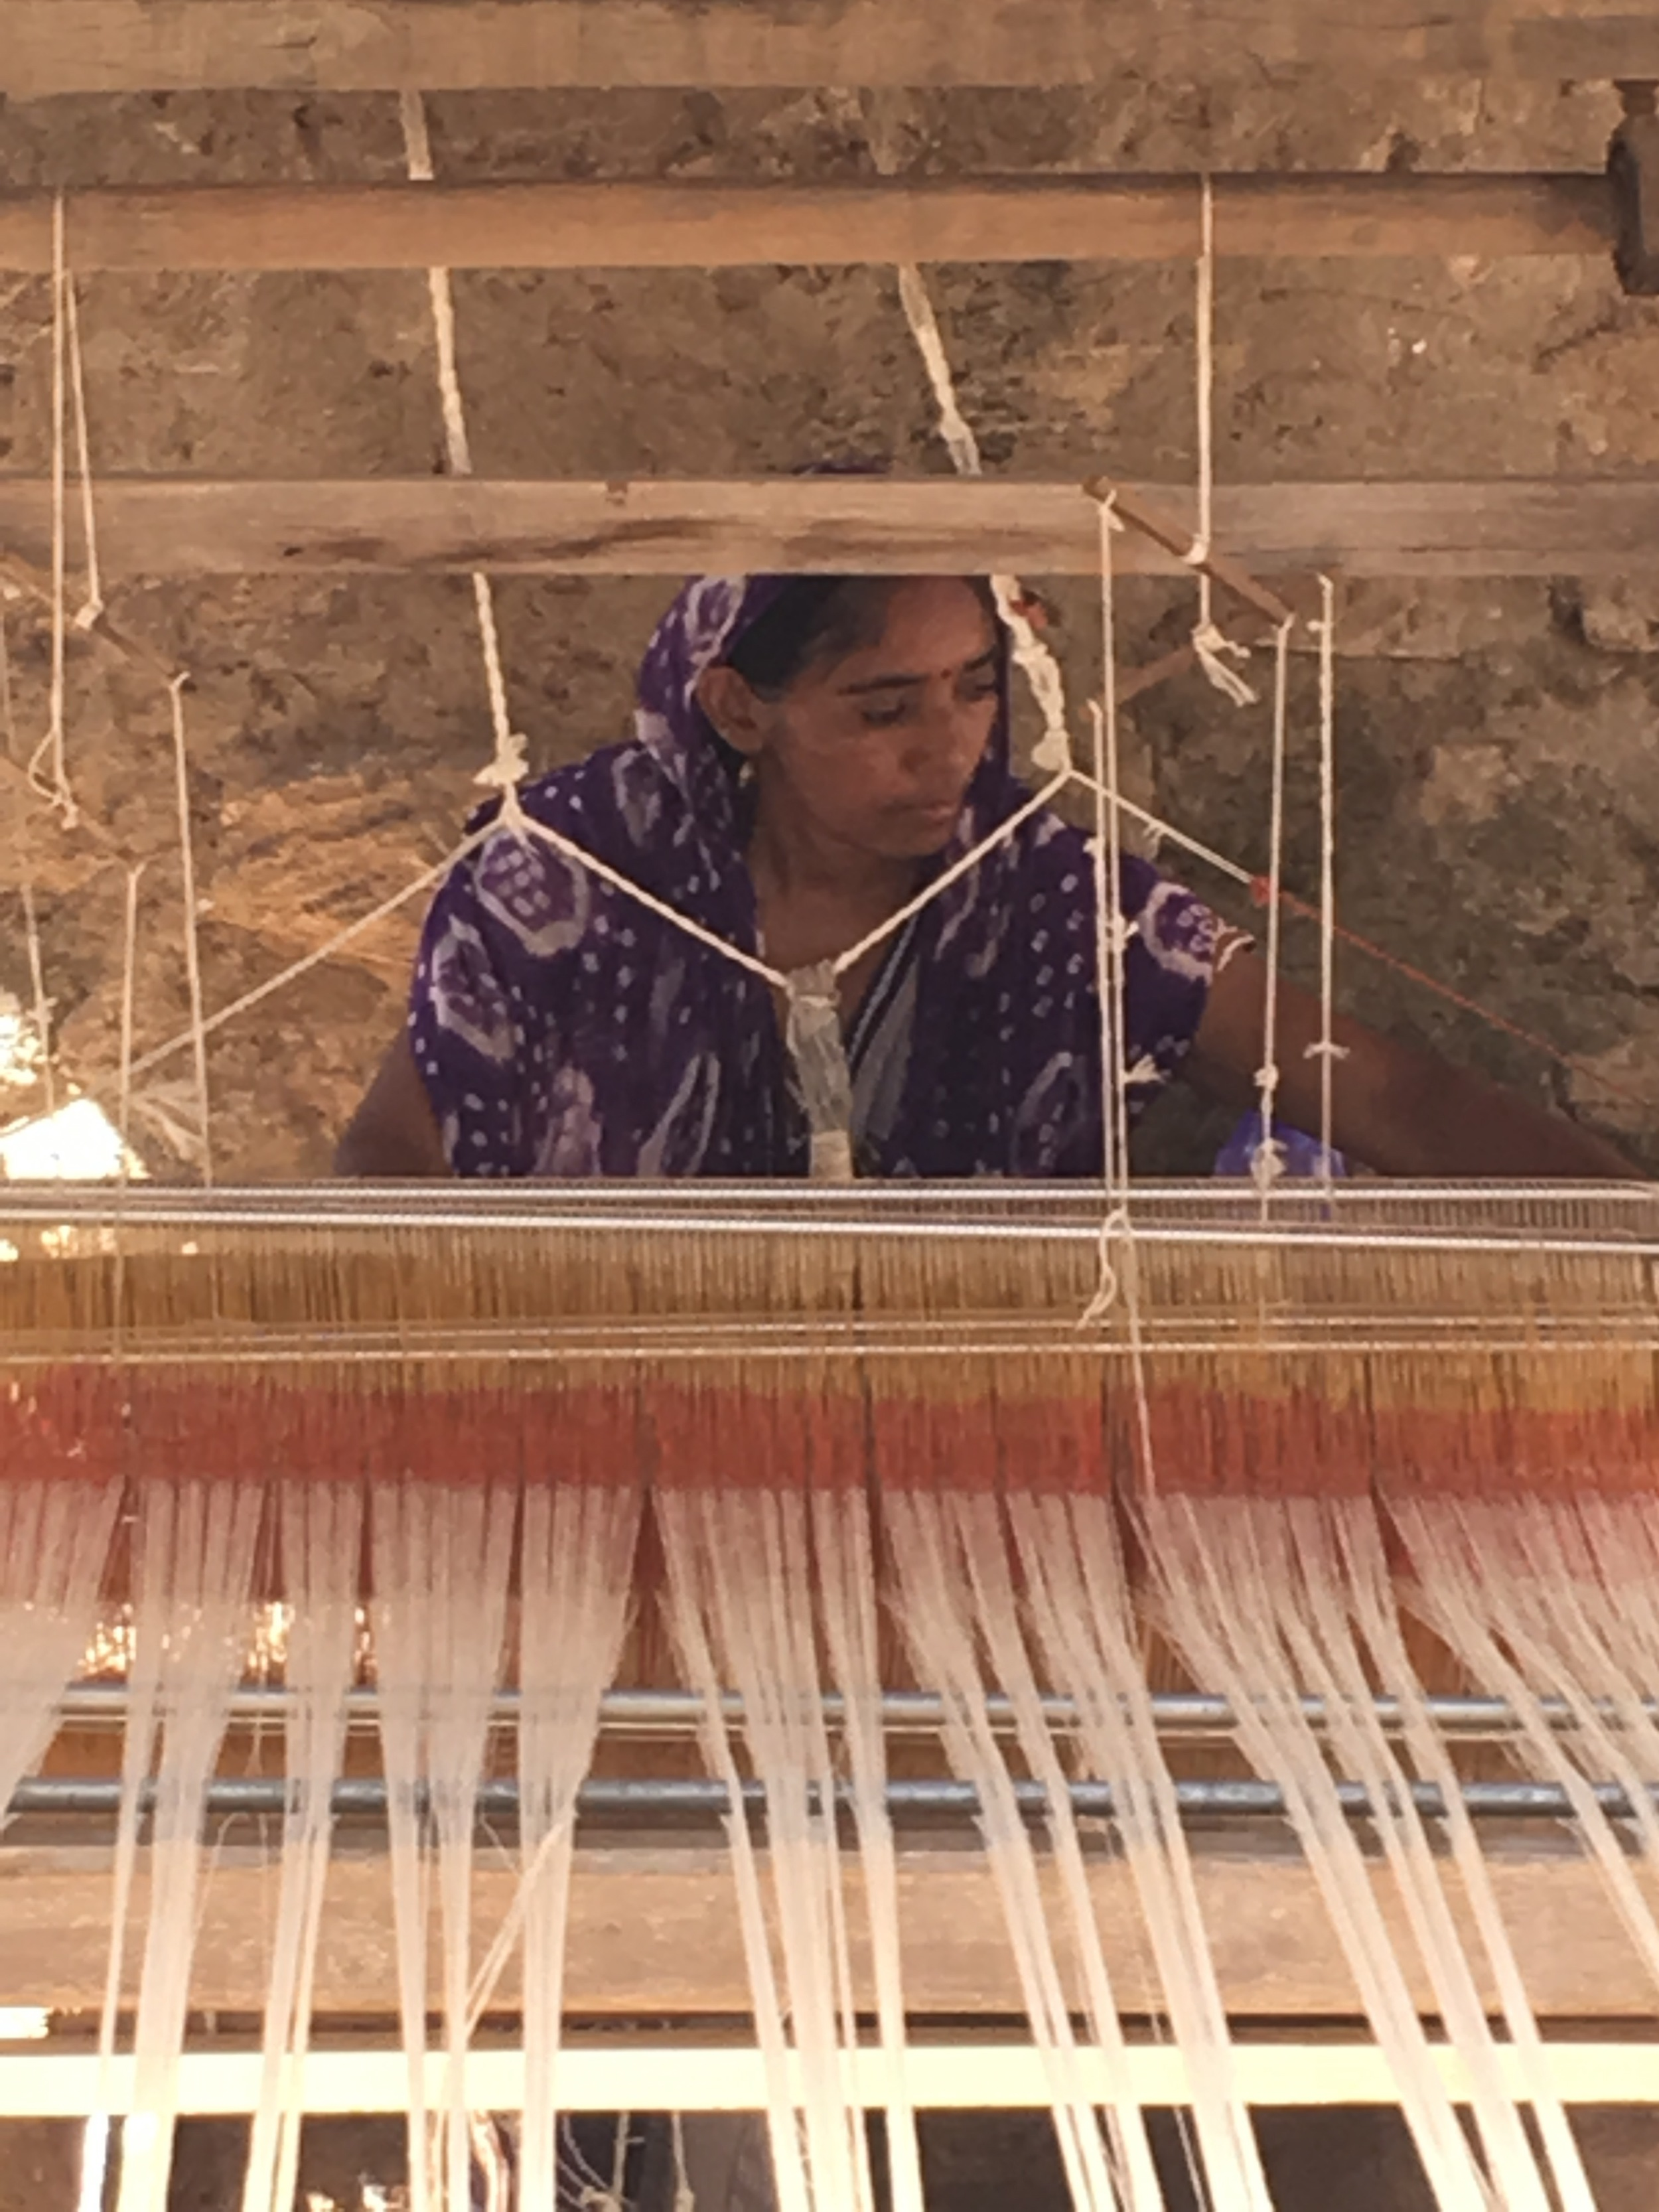 This lady is actually weaving one of the cloths for our new Chindi patchwork collection!